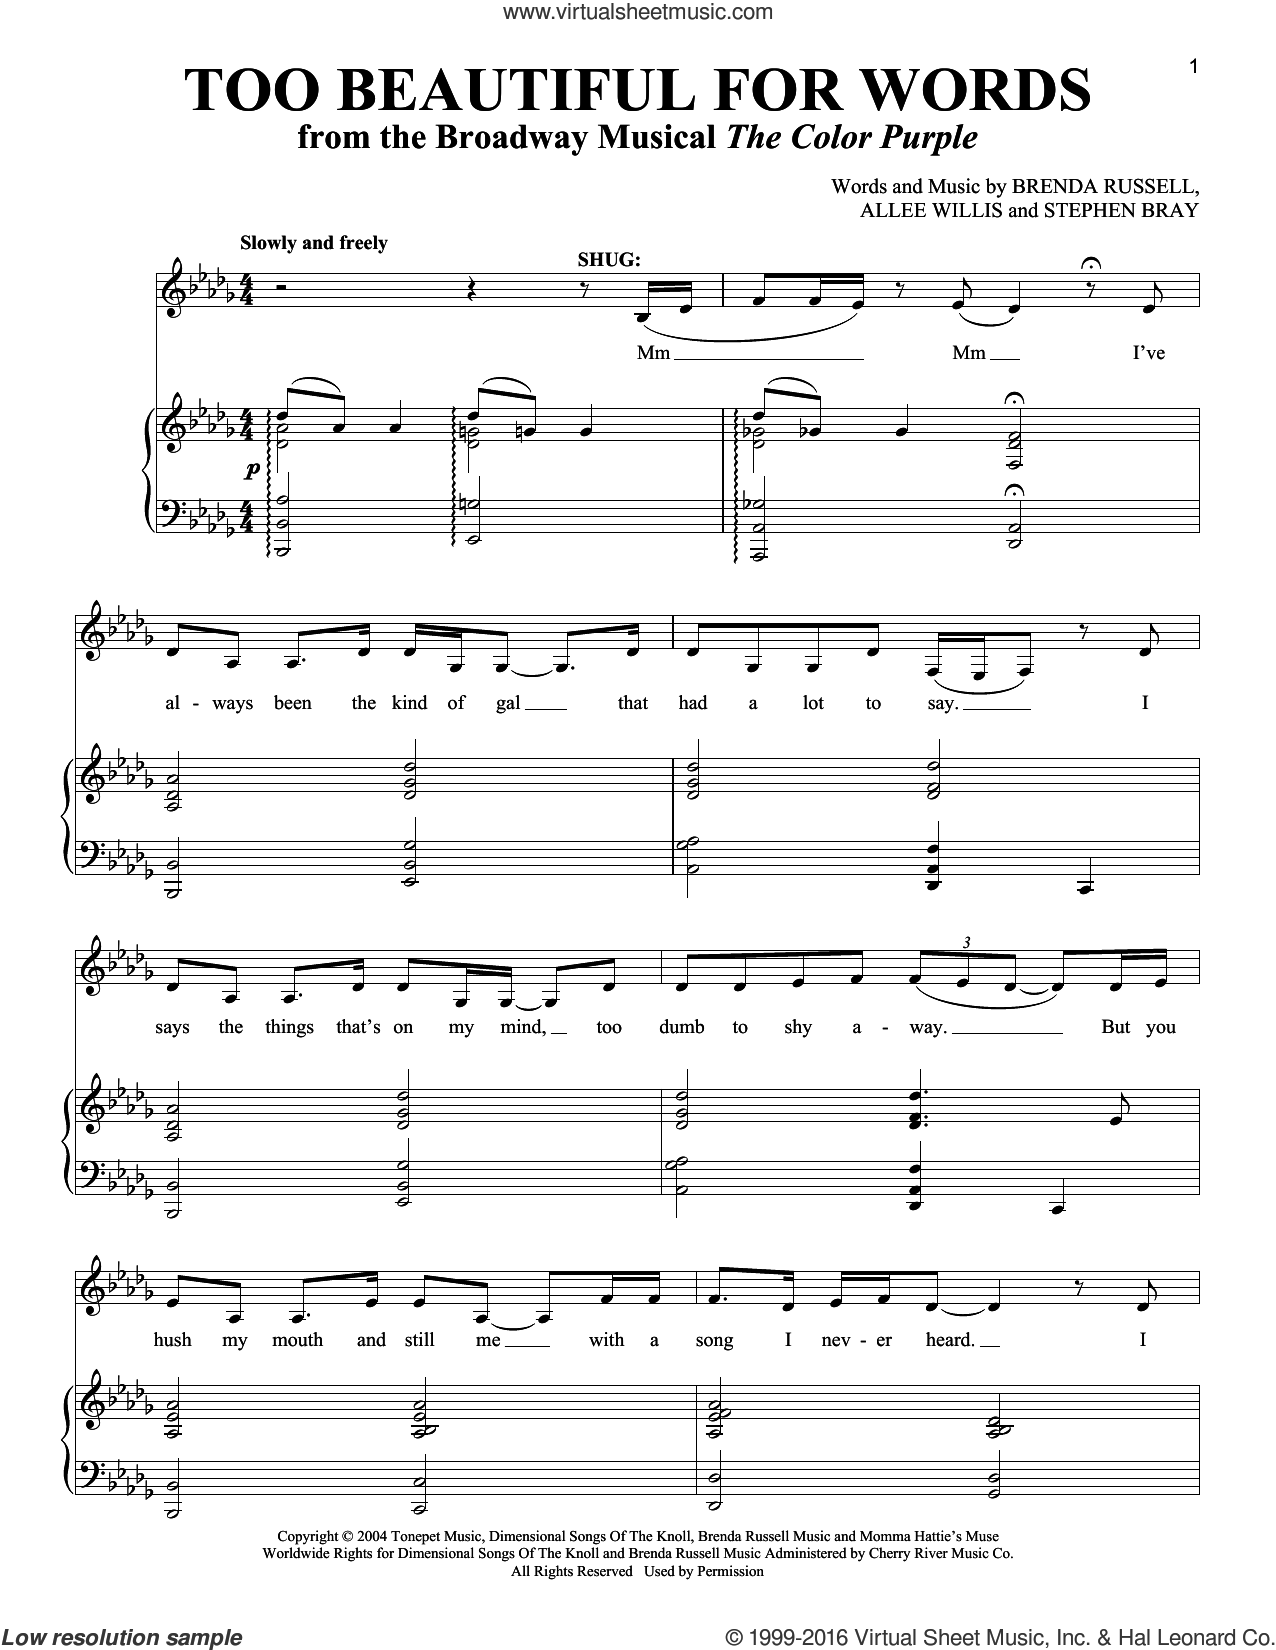 Too Beautiful For Words sheet music for voice and piano by Allee Willis, Brenda Russell and Stephen Bray, intermediate skill level